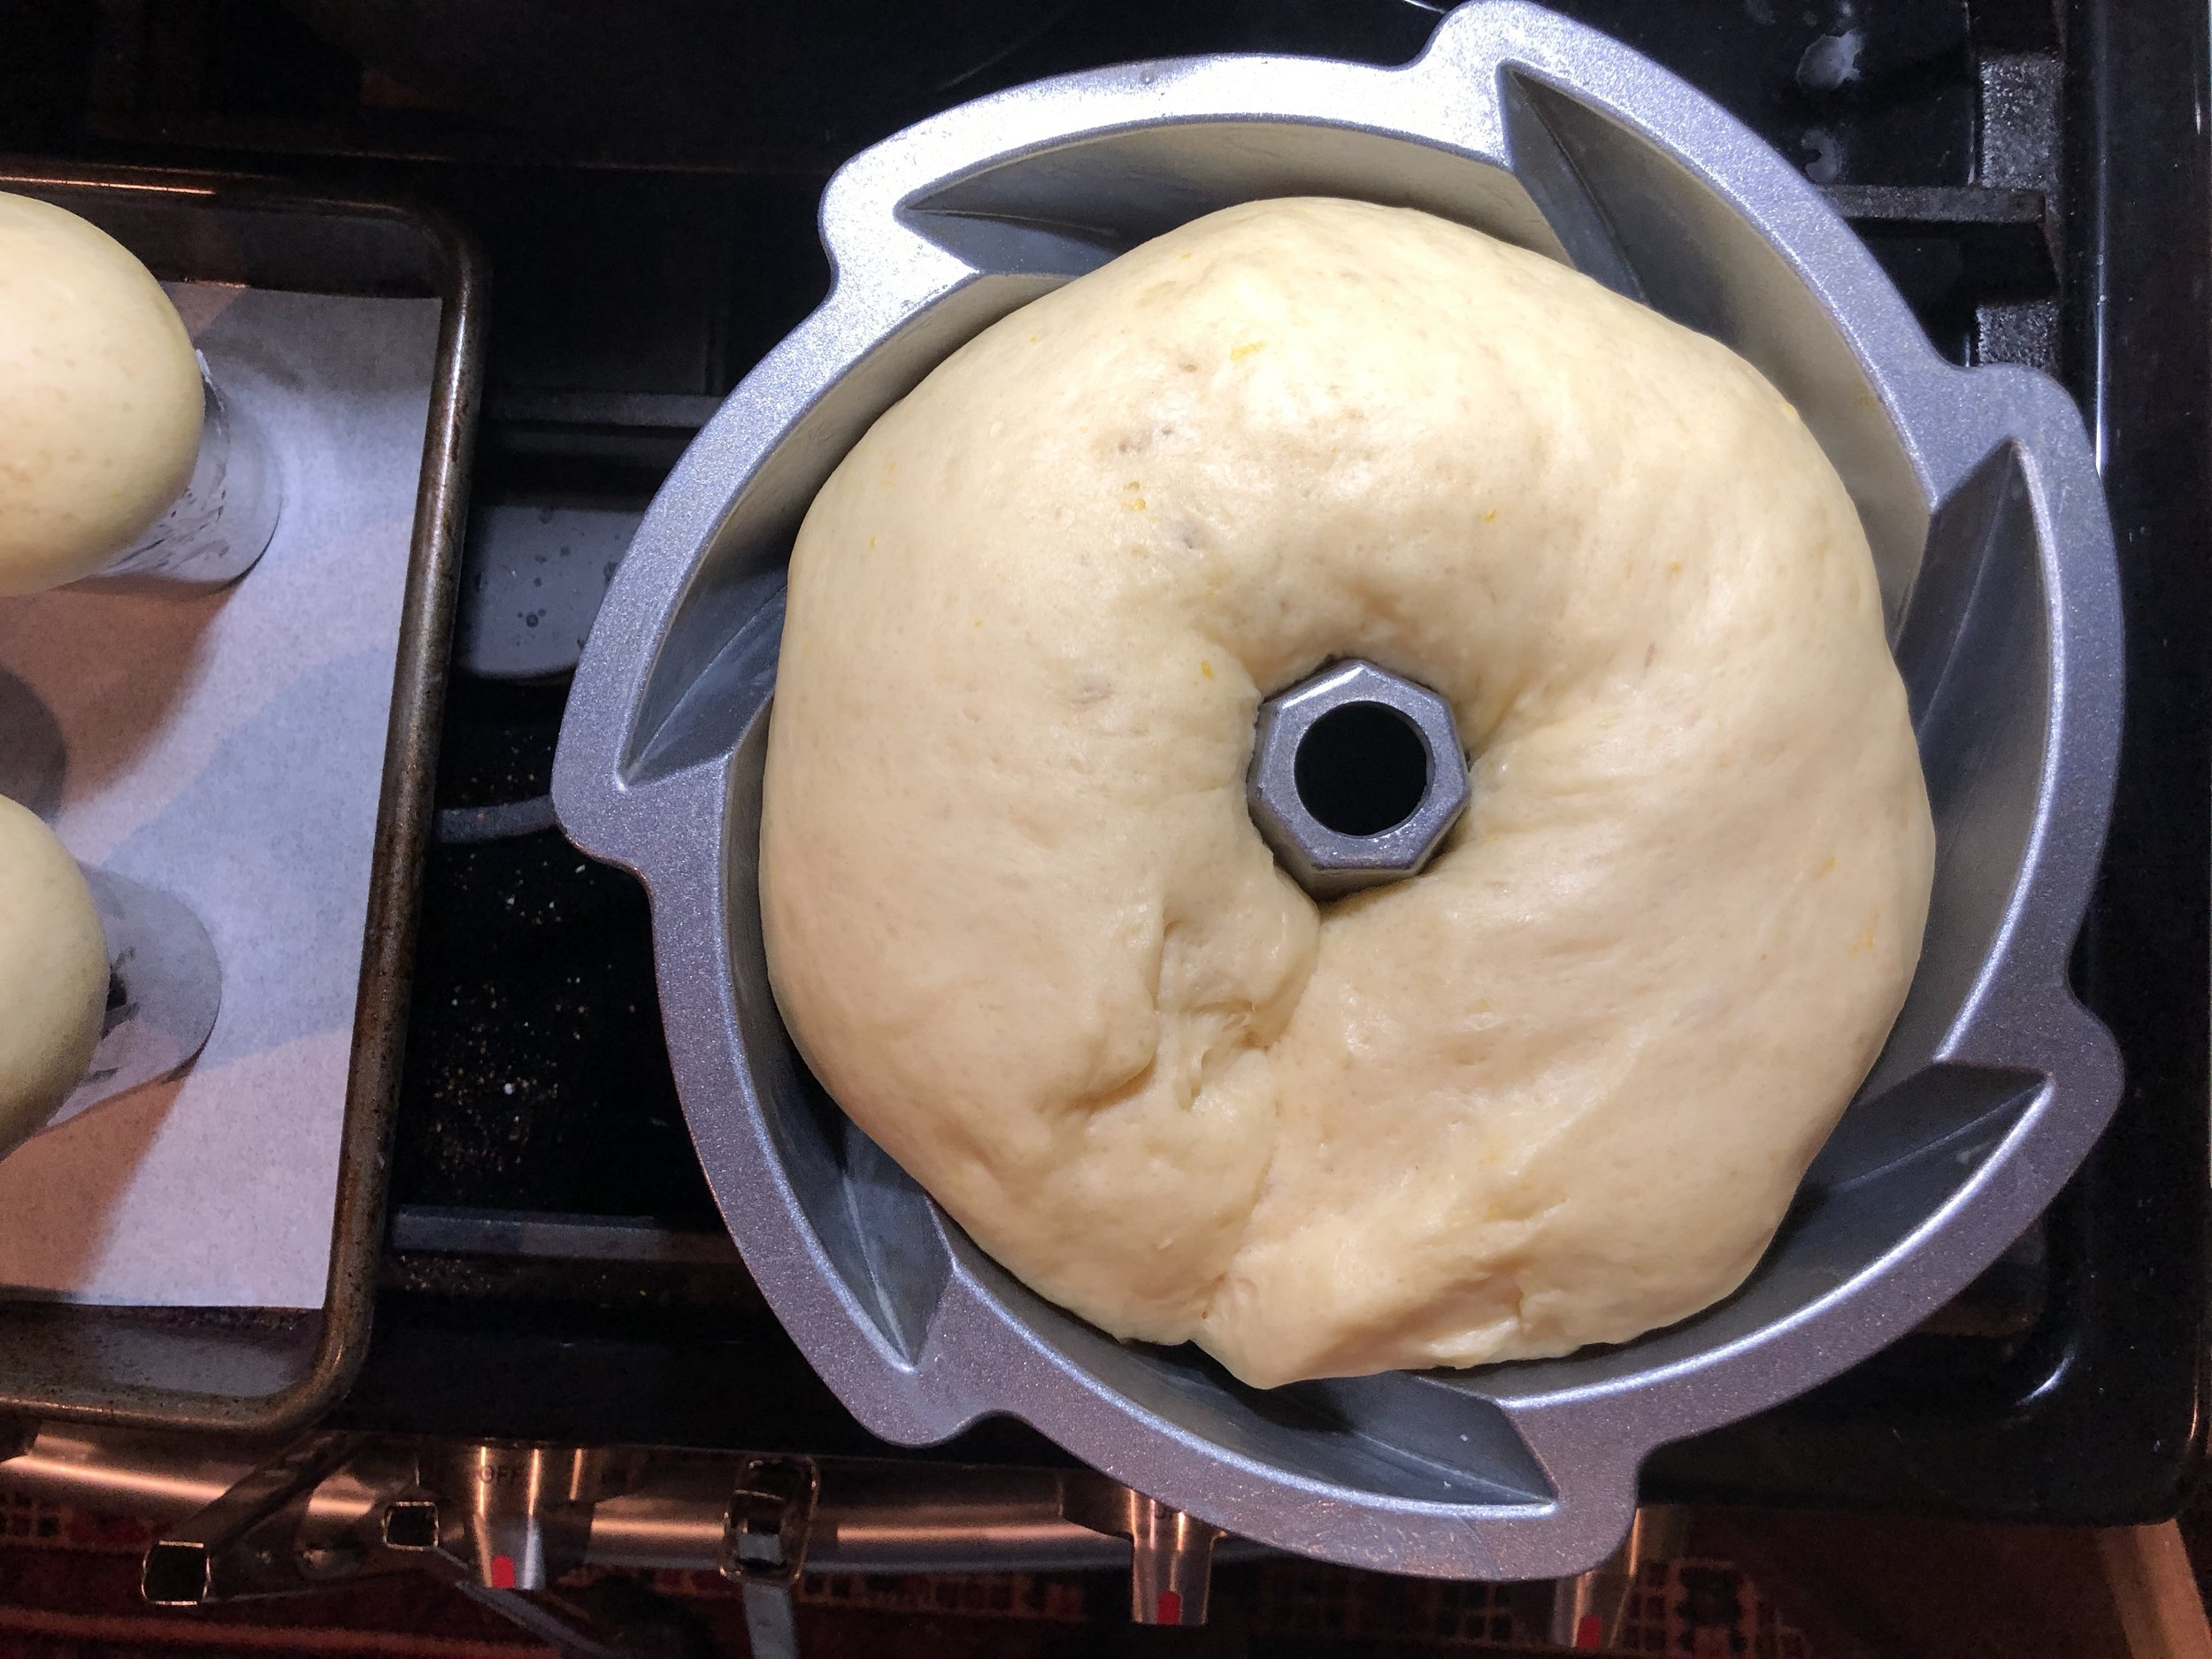 I had extra dough so placed it into a small decorative bundt pan.